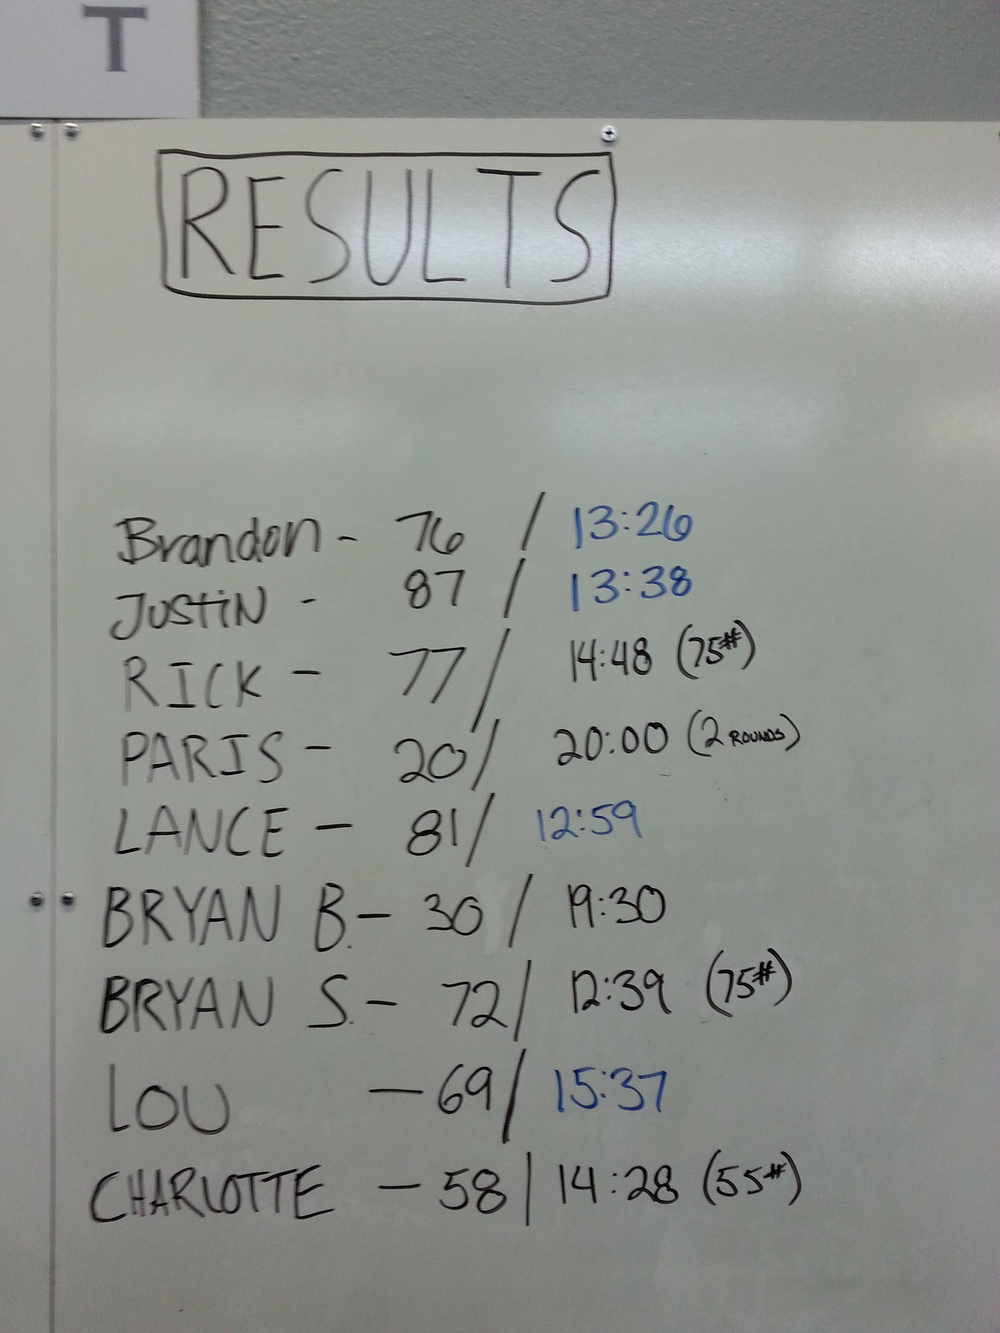 Scores from 7/8!